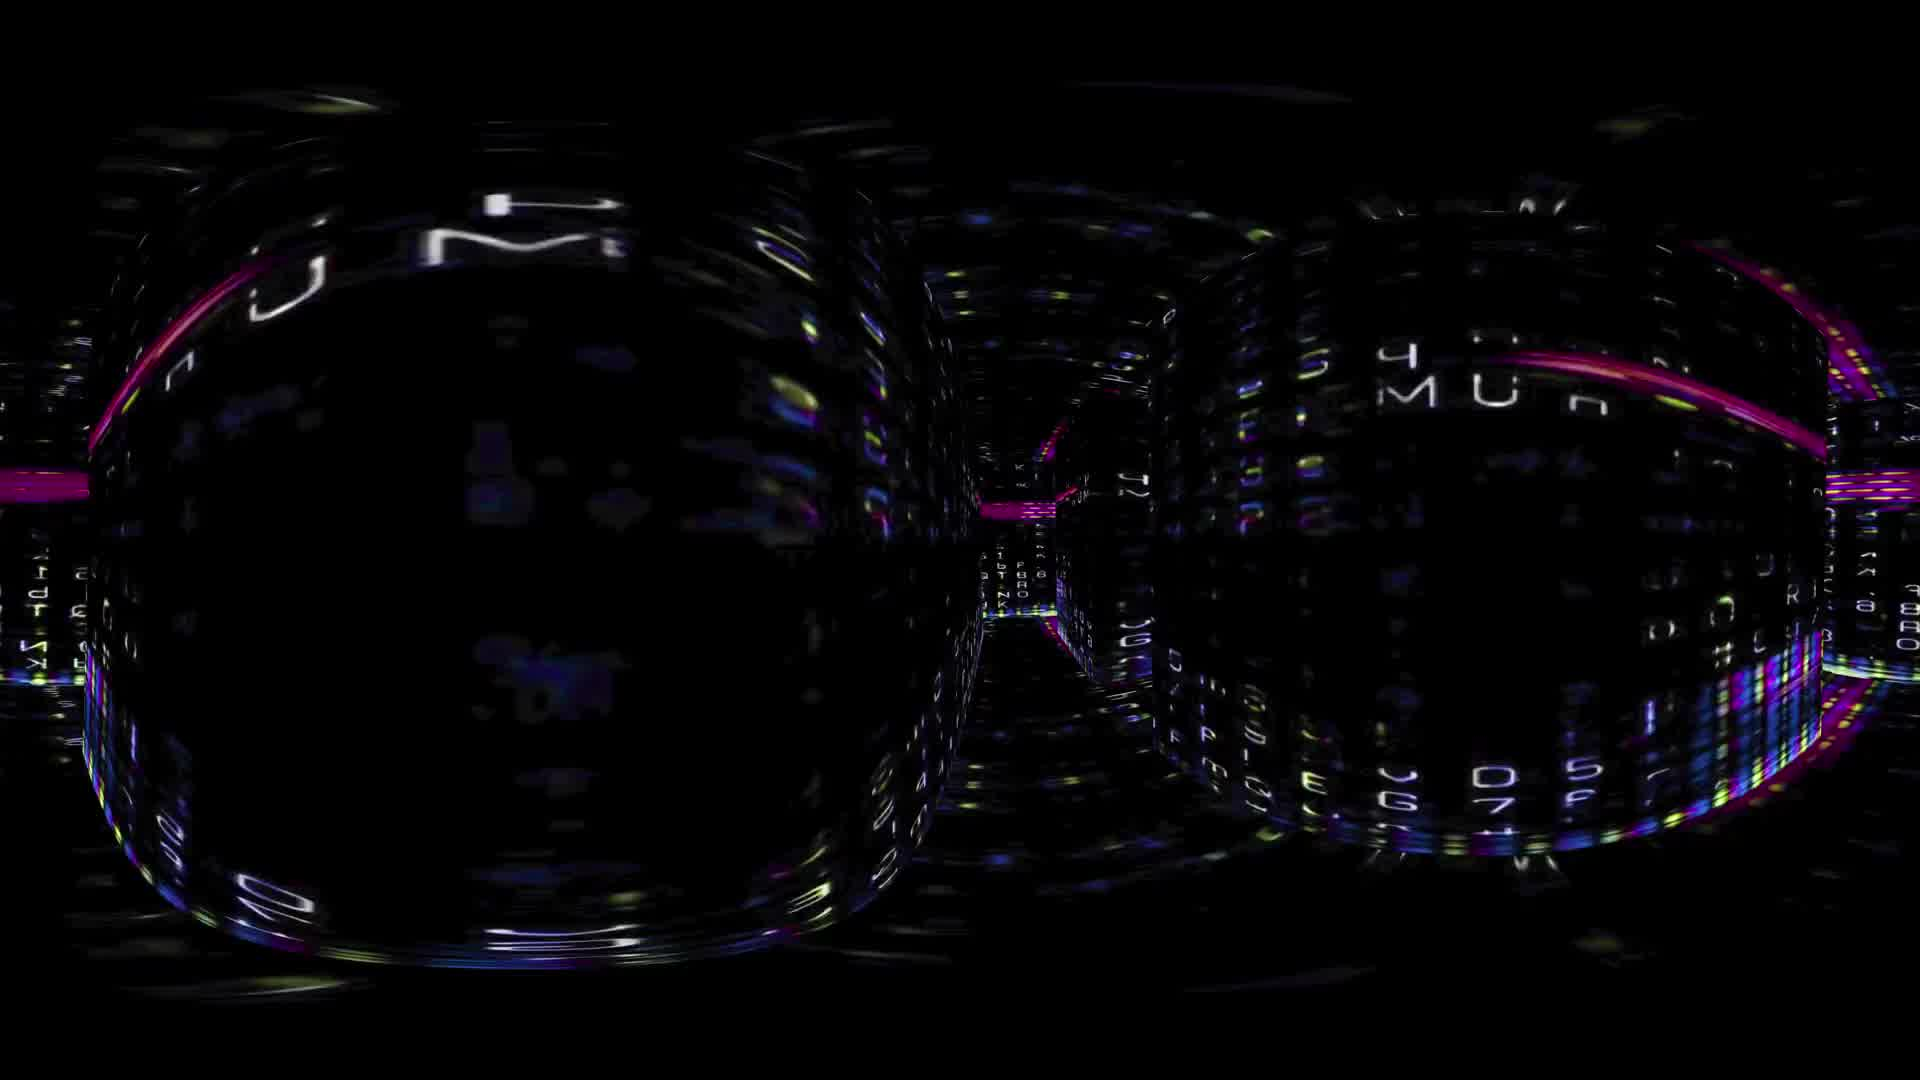 360 VR Digital Graffiti 1005: Virtual reality video traveling through a maze of streaming data and video flux (Loop). Designed to be used in Oculus Rift, Samsung Gear VR and other virtual reality displays.